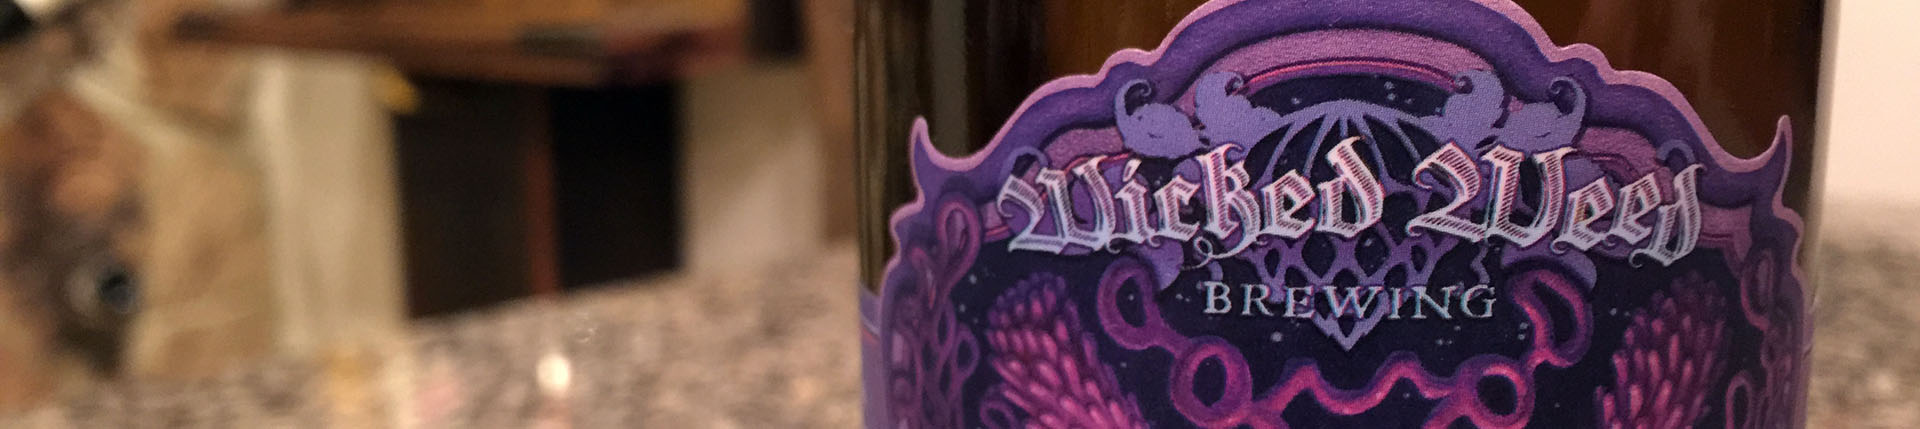 Wicked Weed Black Angel Header